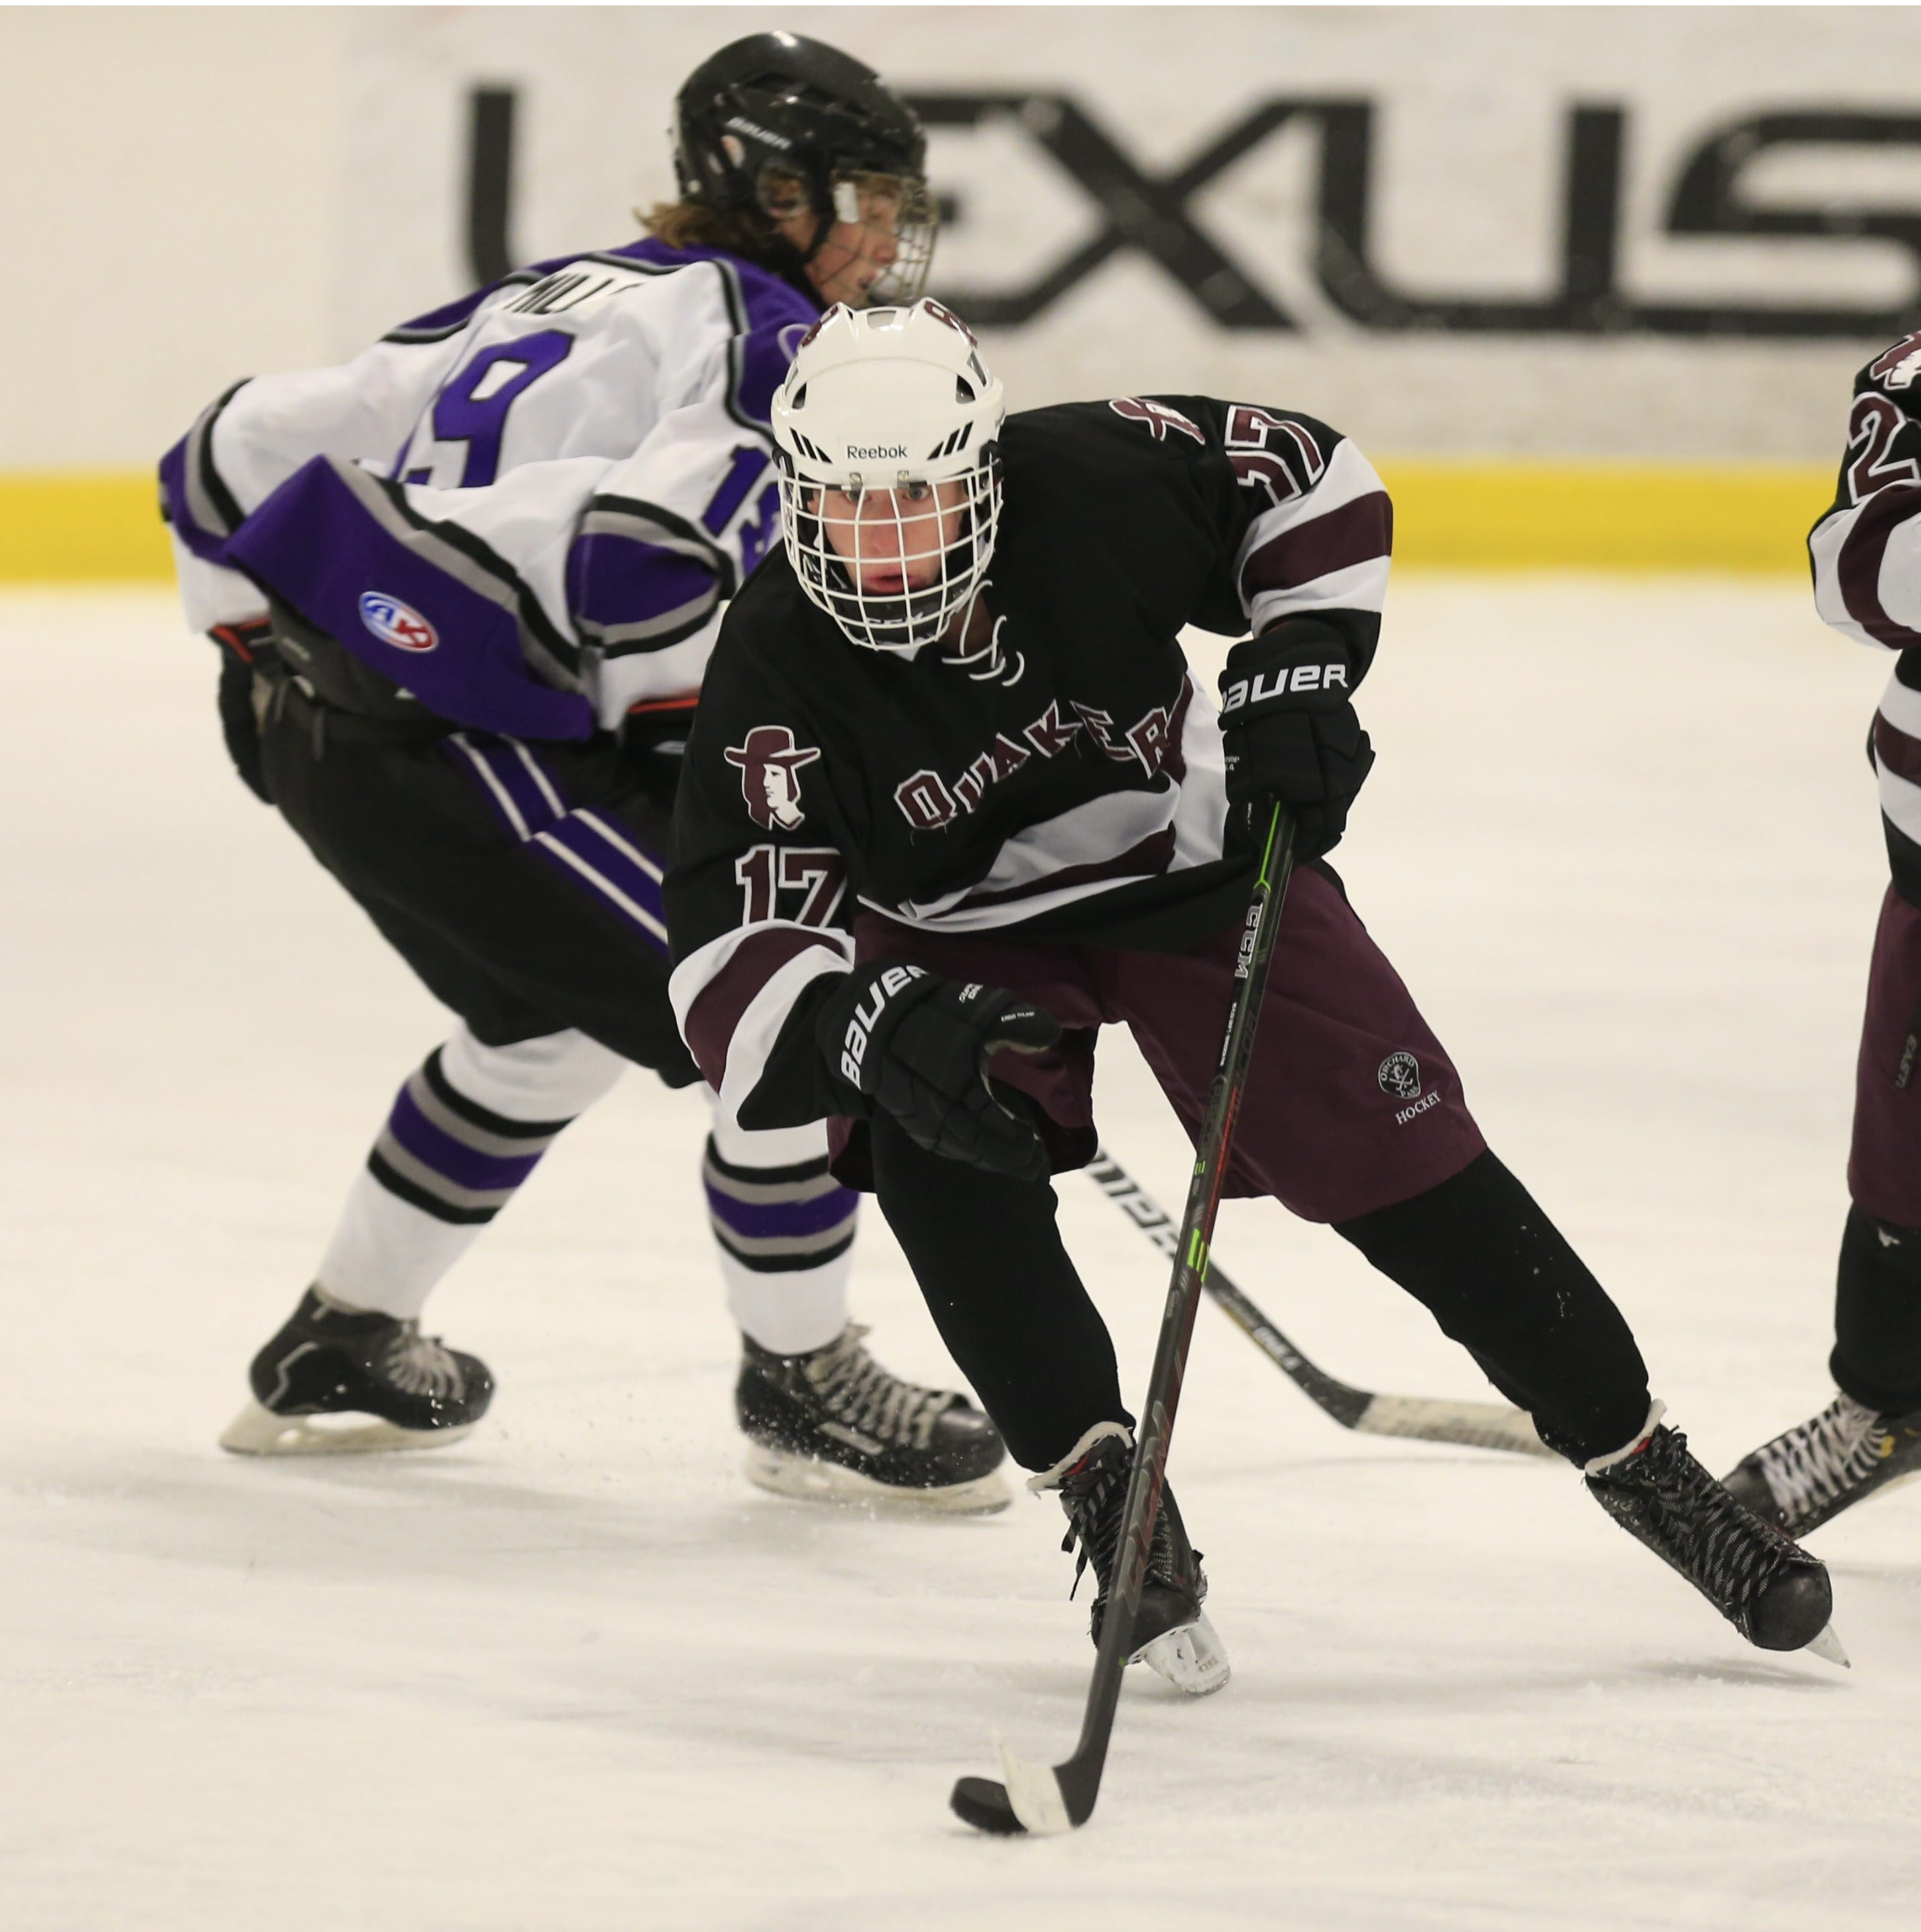 Orchard Park's Mike Strachan (17) moves the puck up ice during first period action against Hamburg at the Northtown Center in Amherst on Monday, Dec. 29, 2014.  (Harry Scull Jr./Buffalo News)